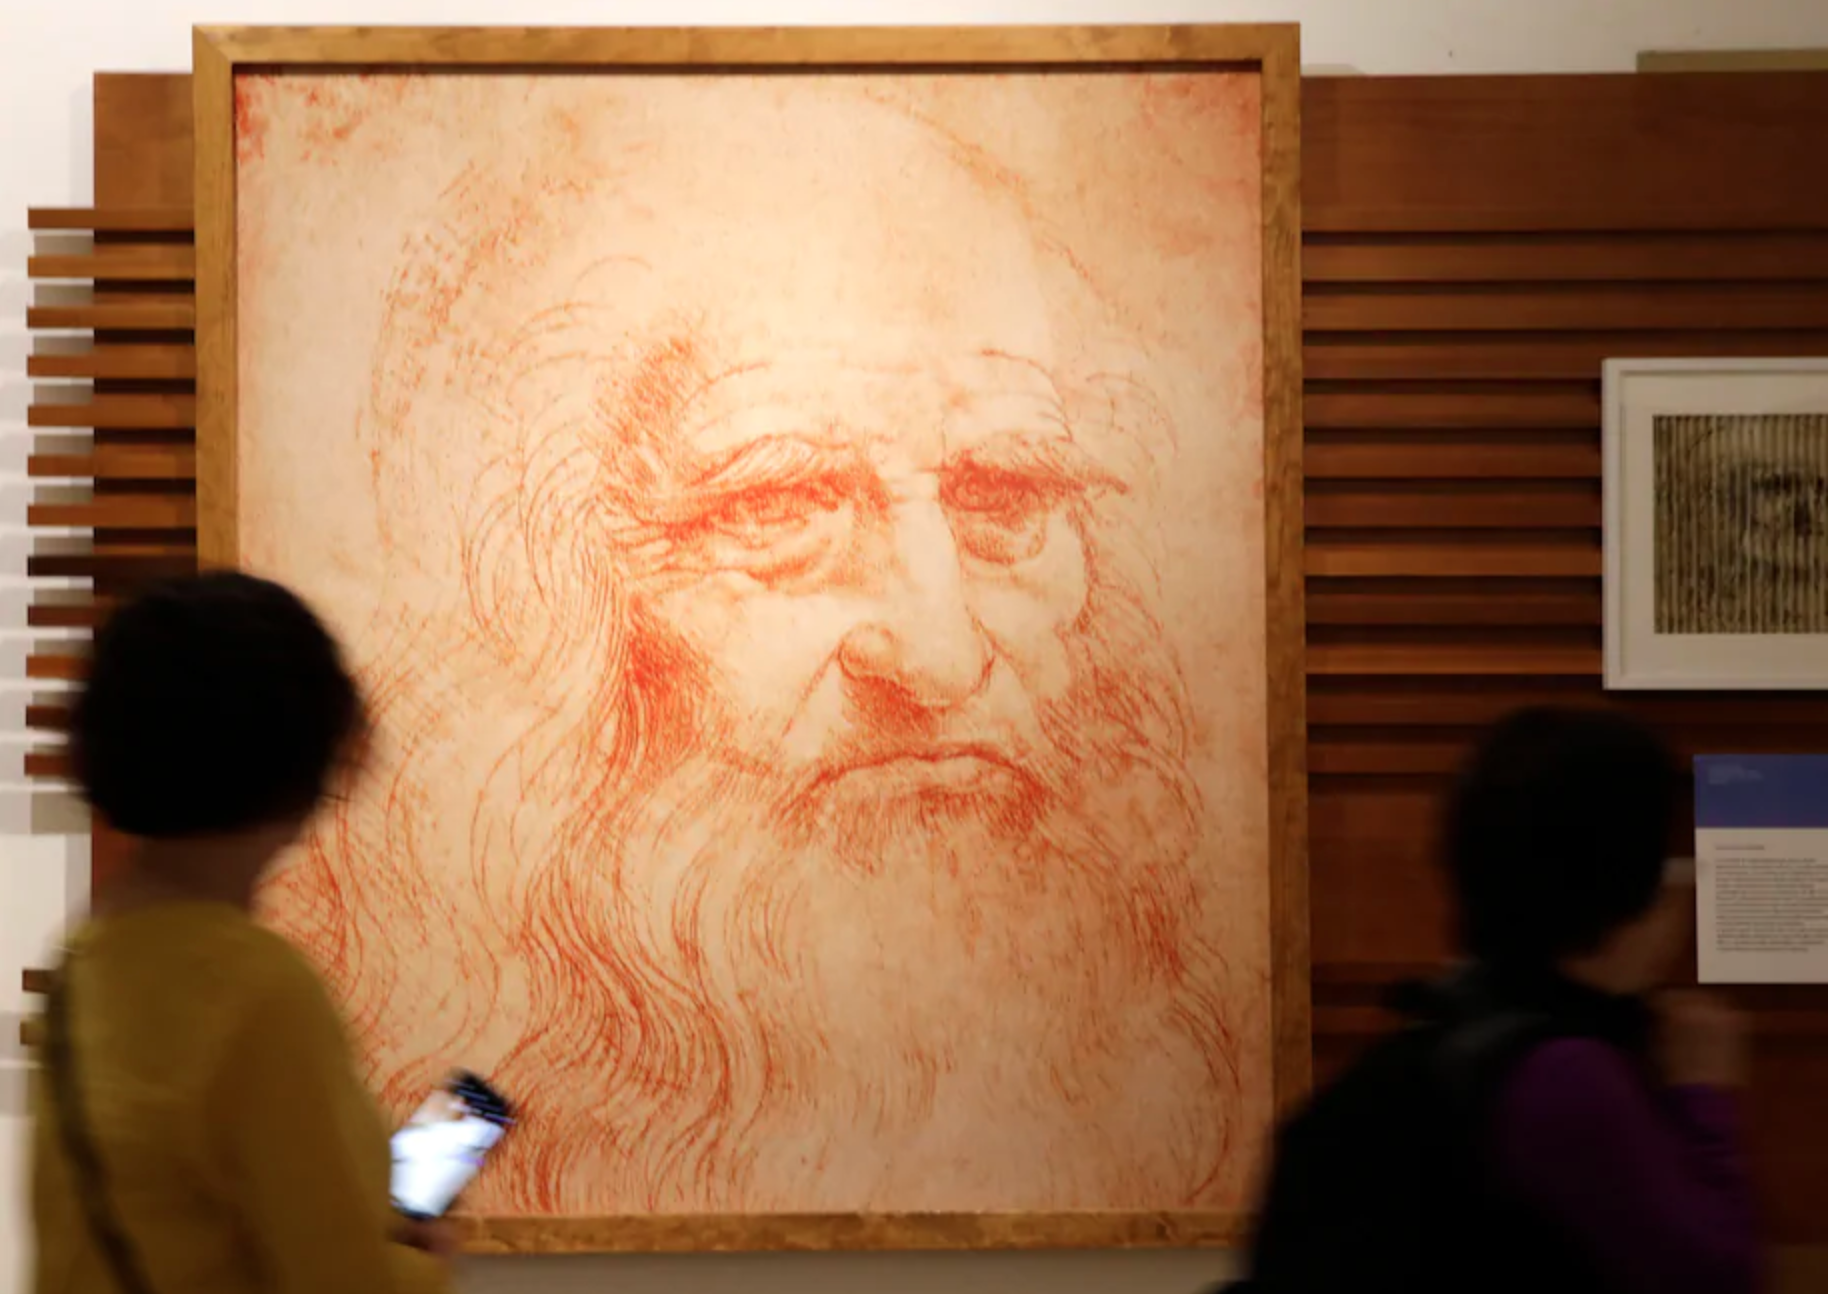 Renaissance painter, scientist and inventor Leonardo da Vinci was one of history's most famous polymaths. (AP Photo/Alessandra Tarantino)